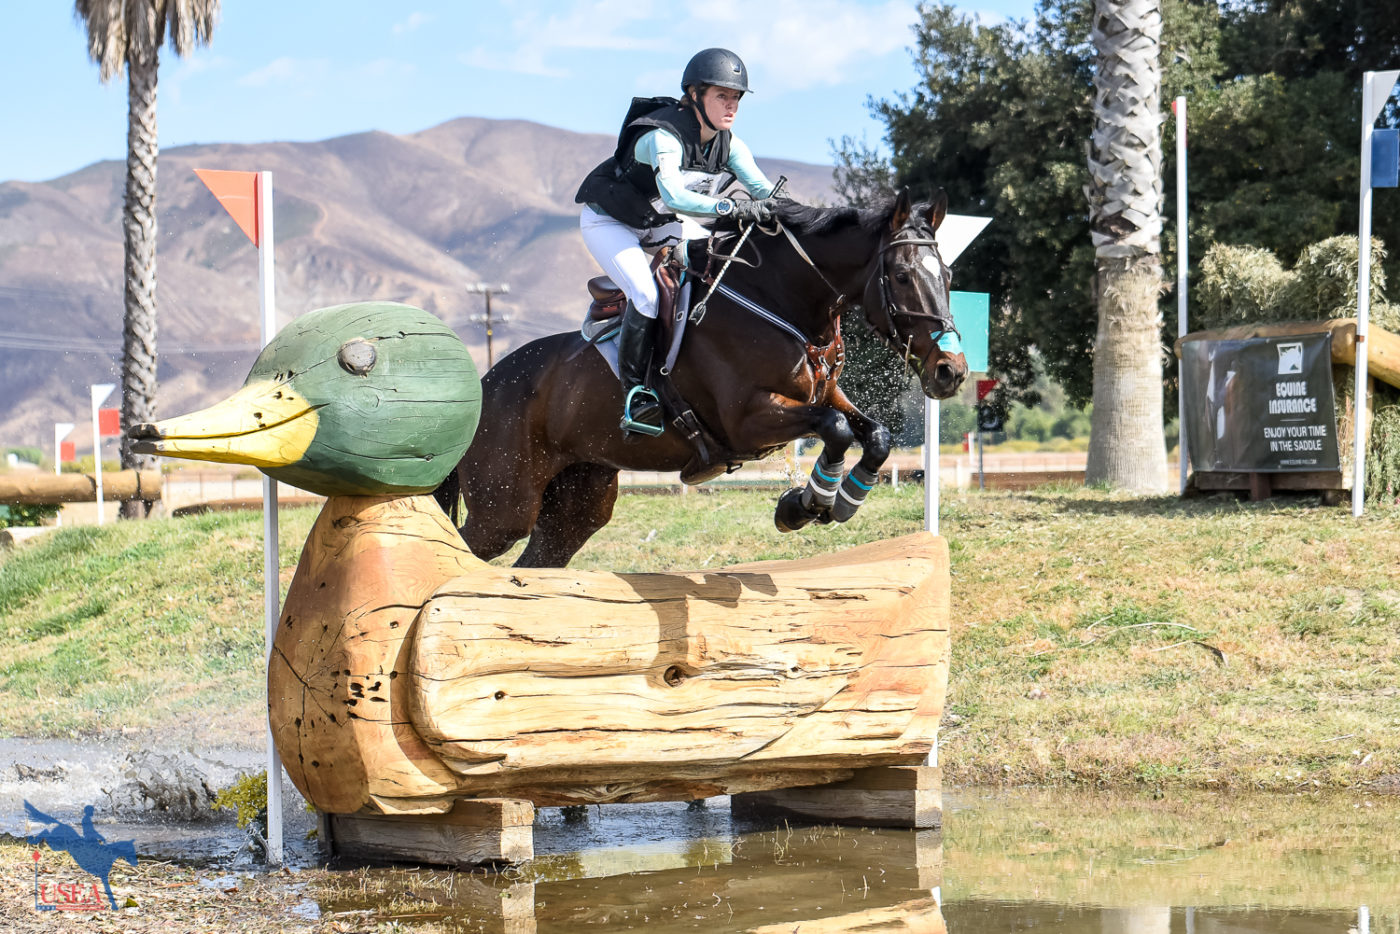 Duck, duck, goose! USEA/Jessica Duffy Photo.